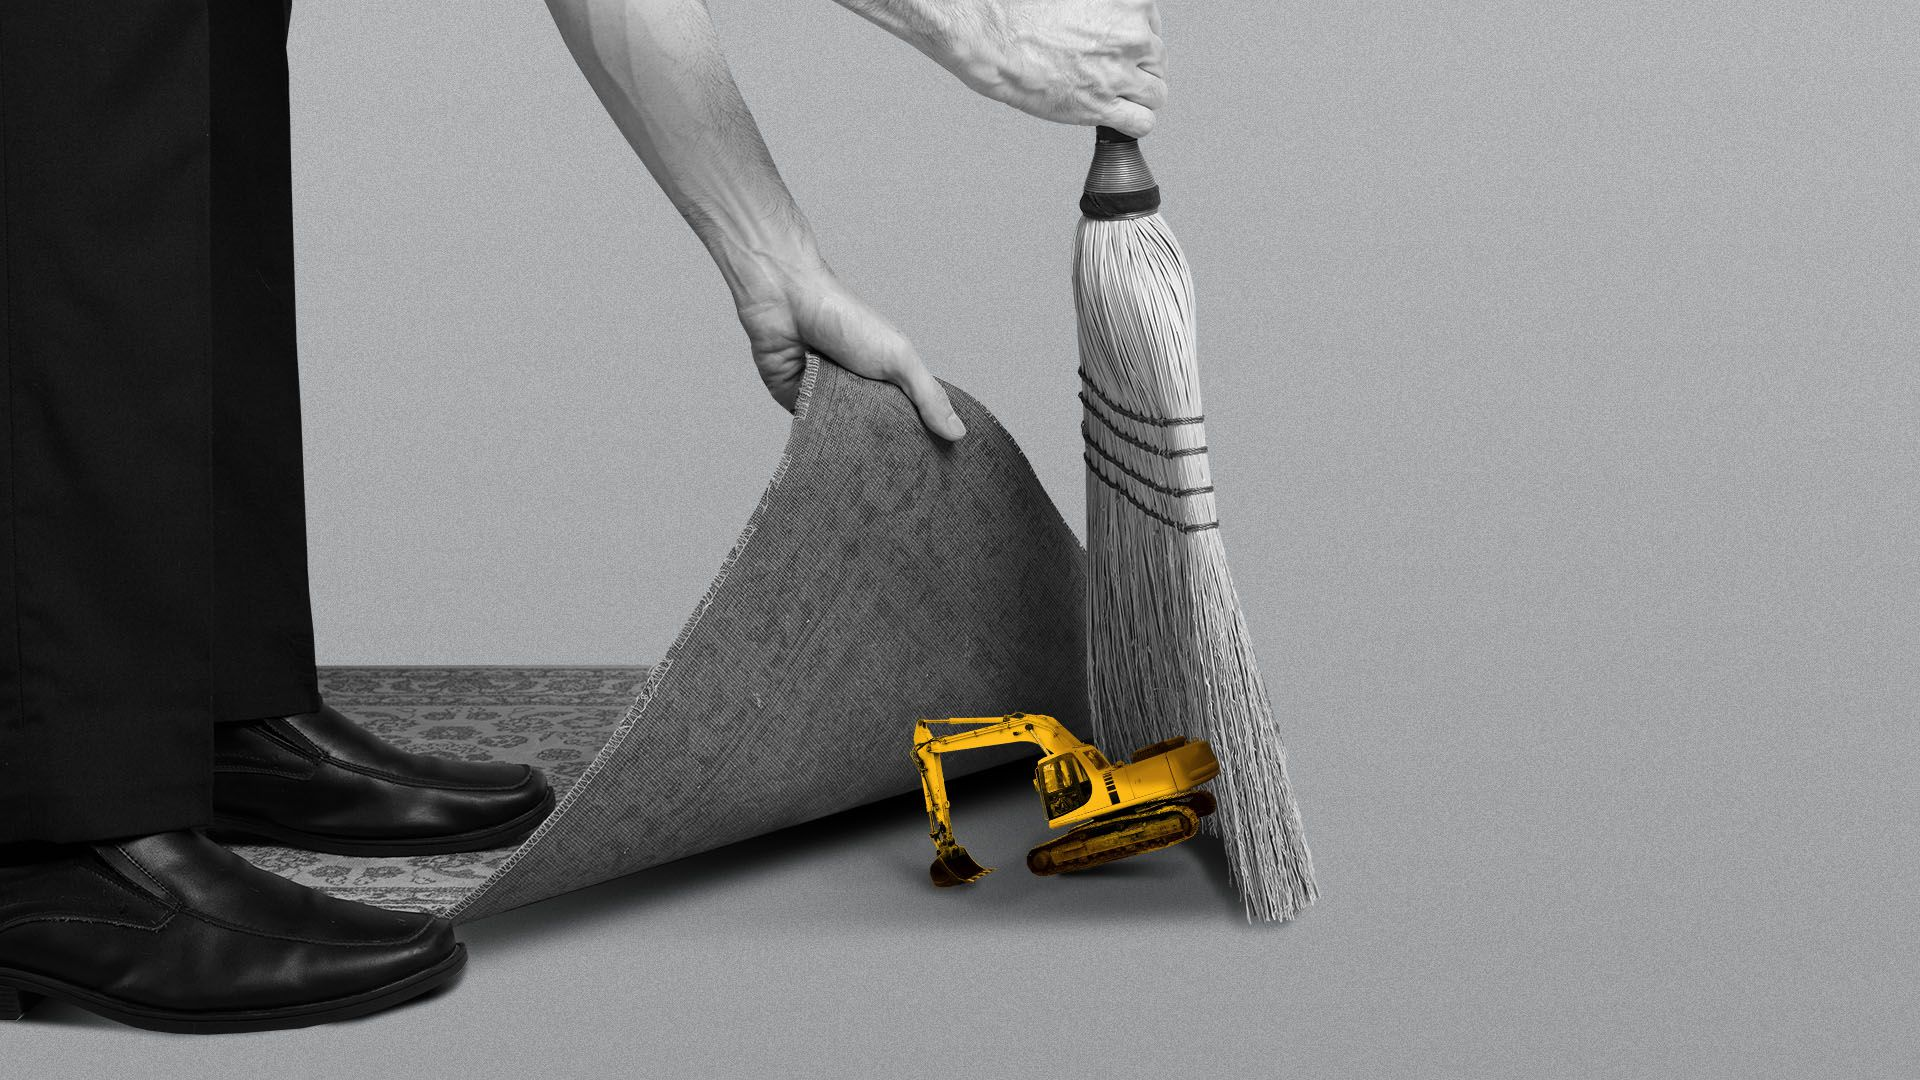 Illustration of a piece of construction equipment being swept under a rug